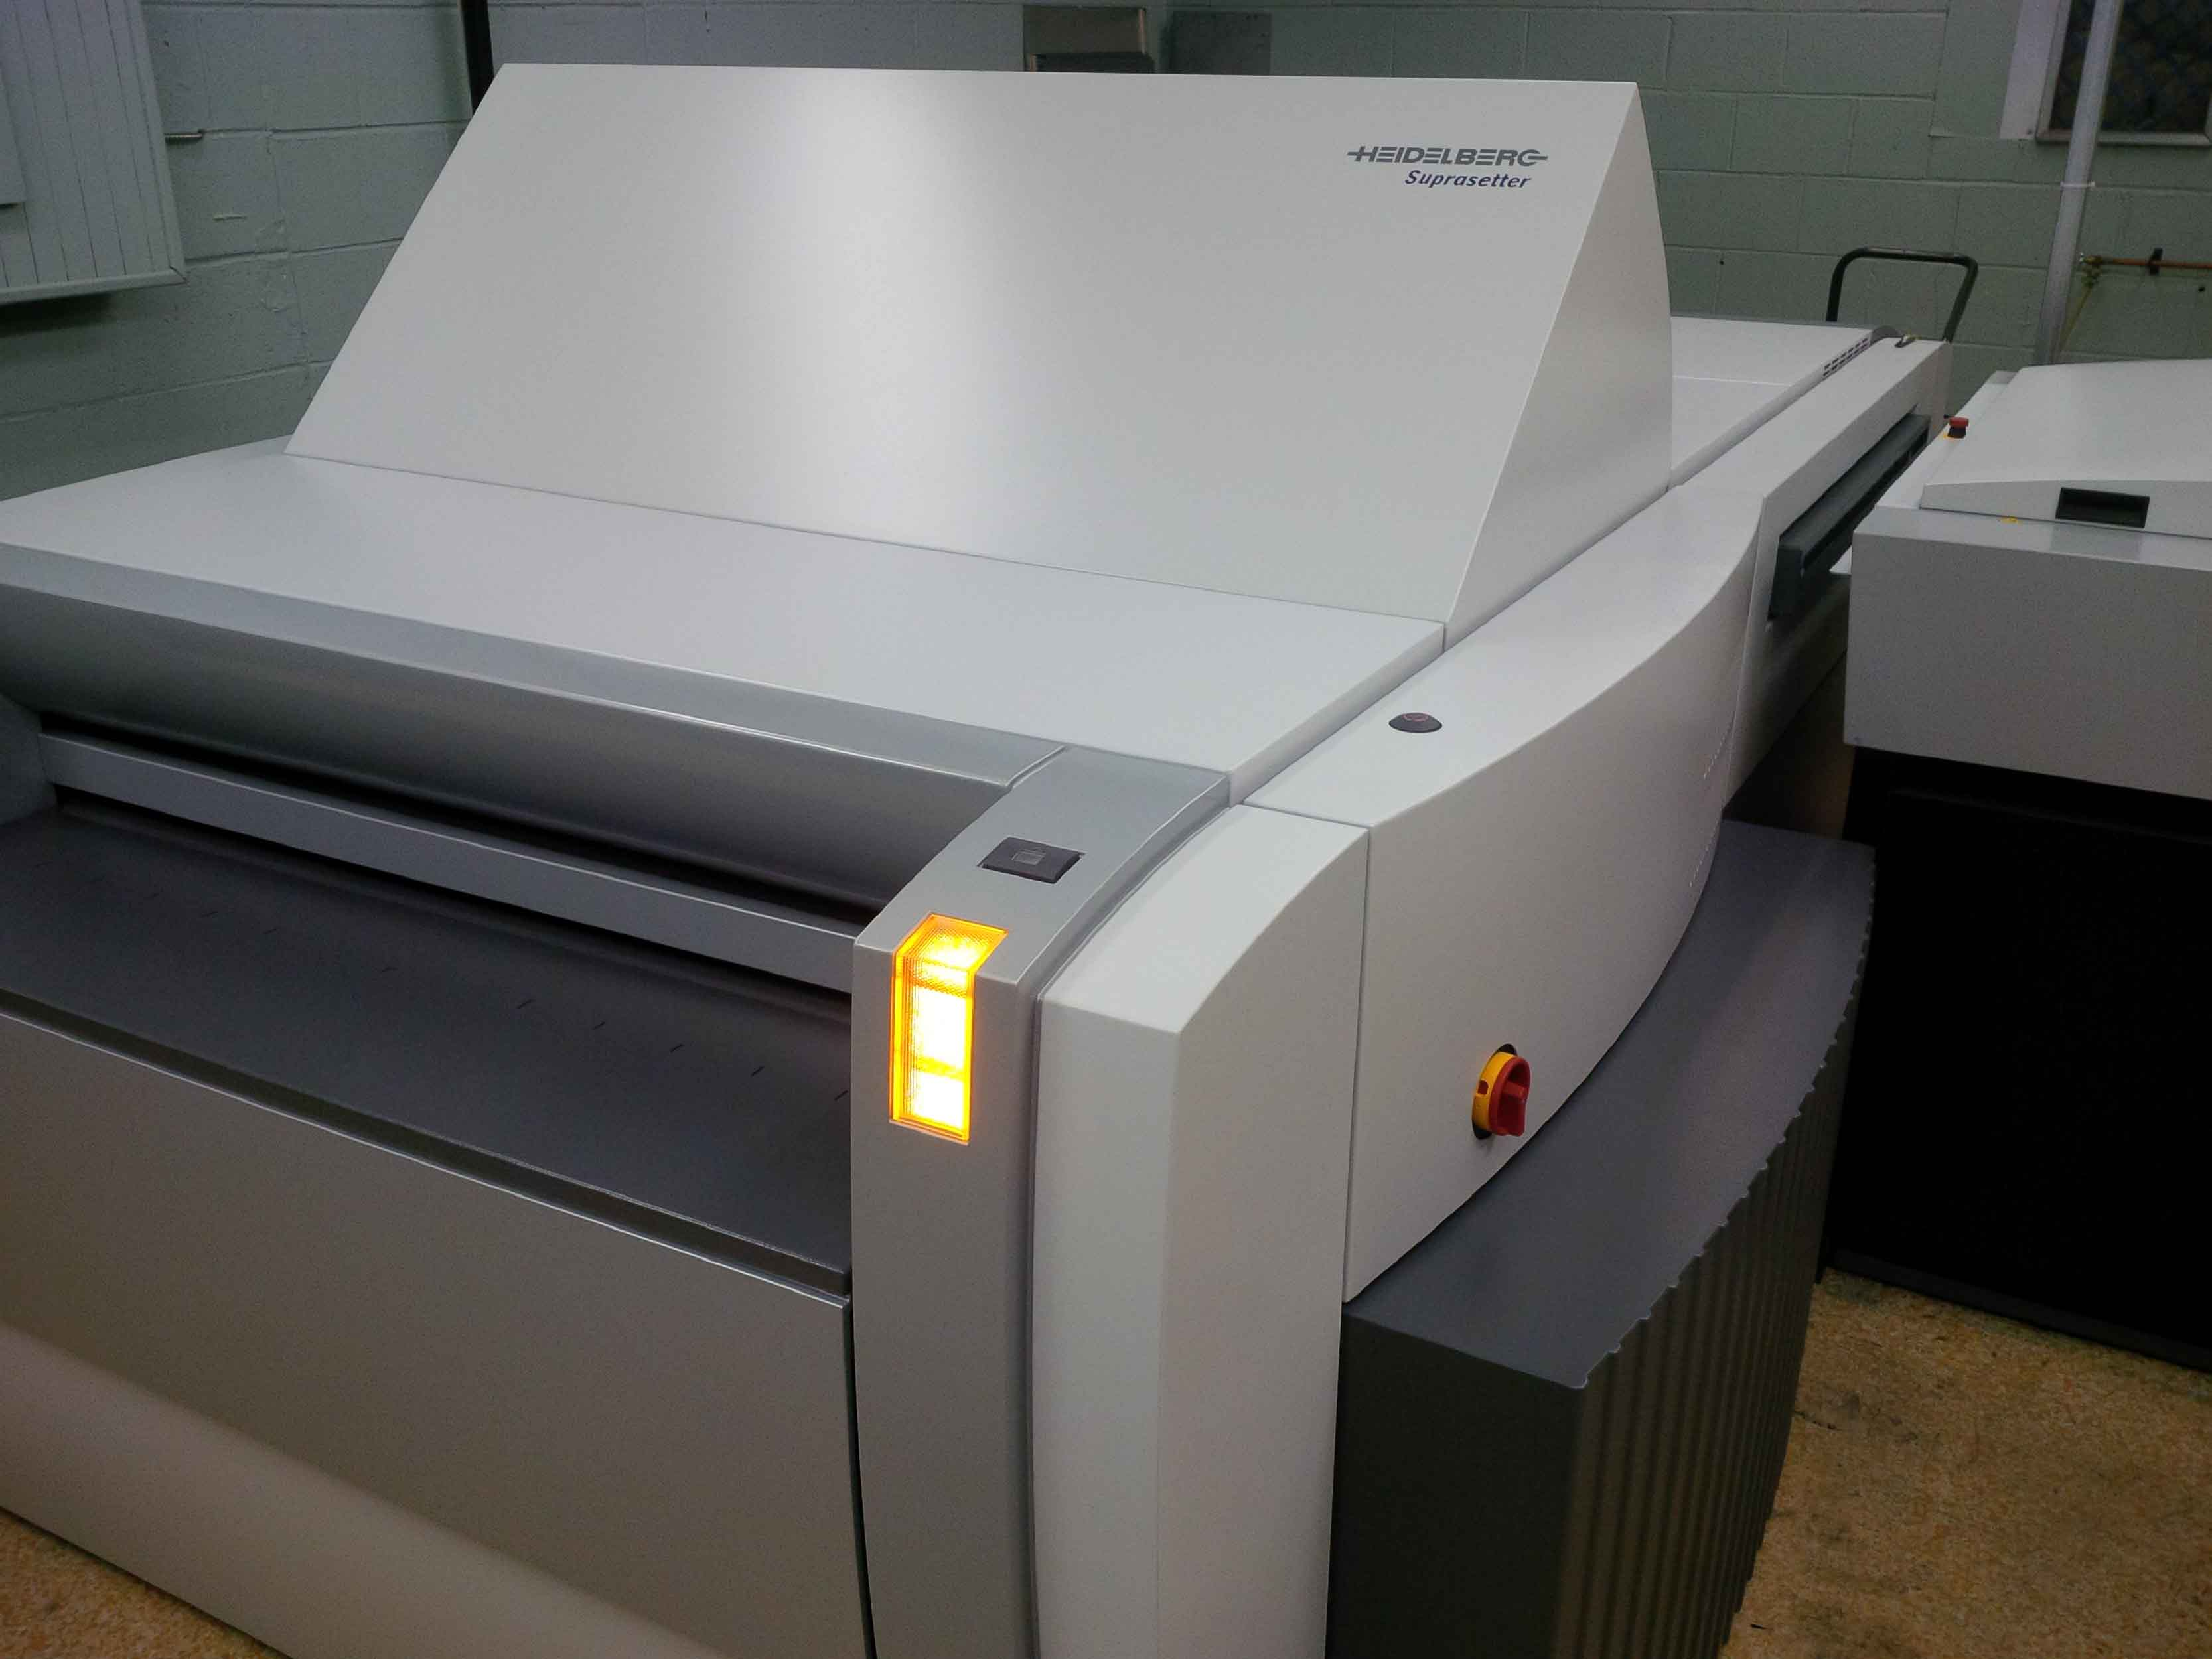 Lindsay Paper Box Company uses a Print-Ready system.